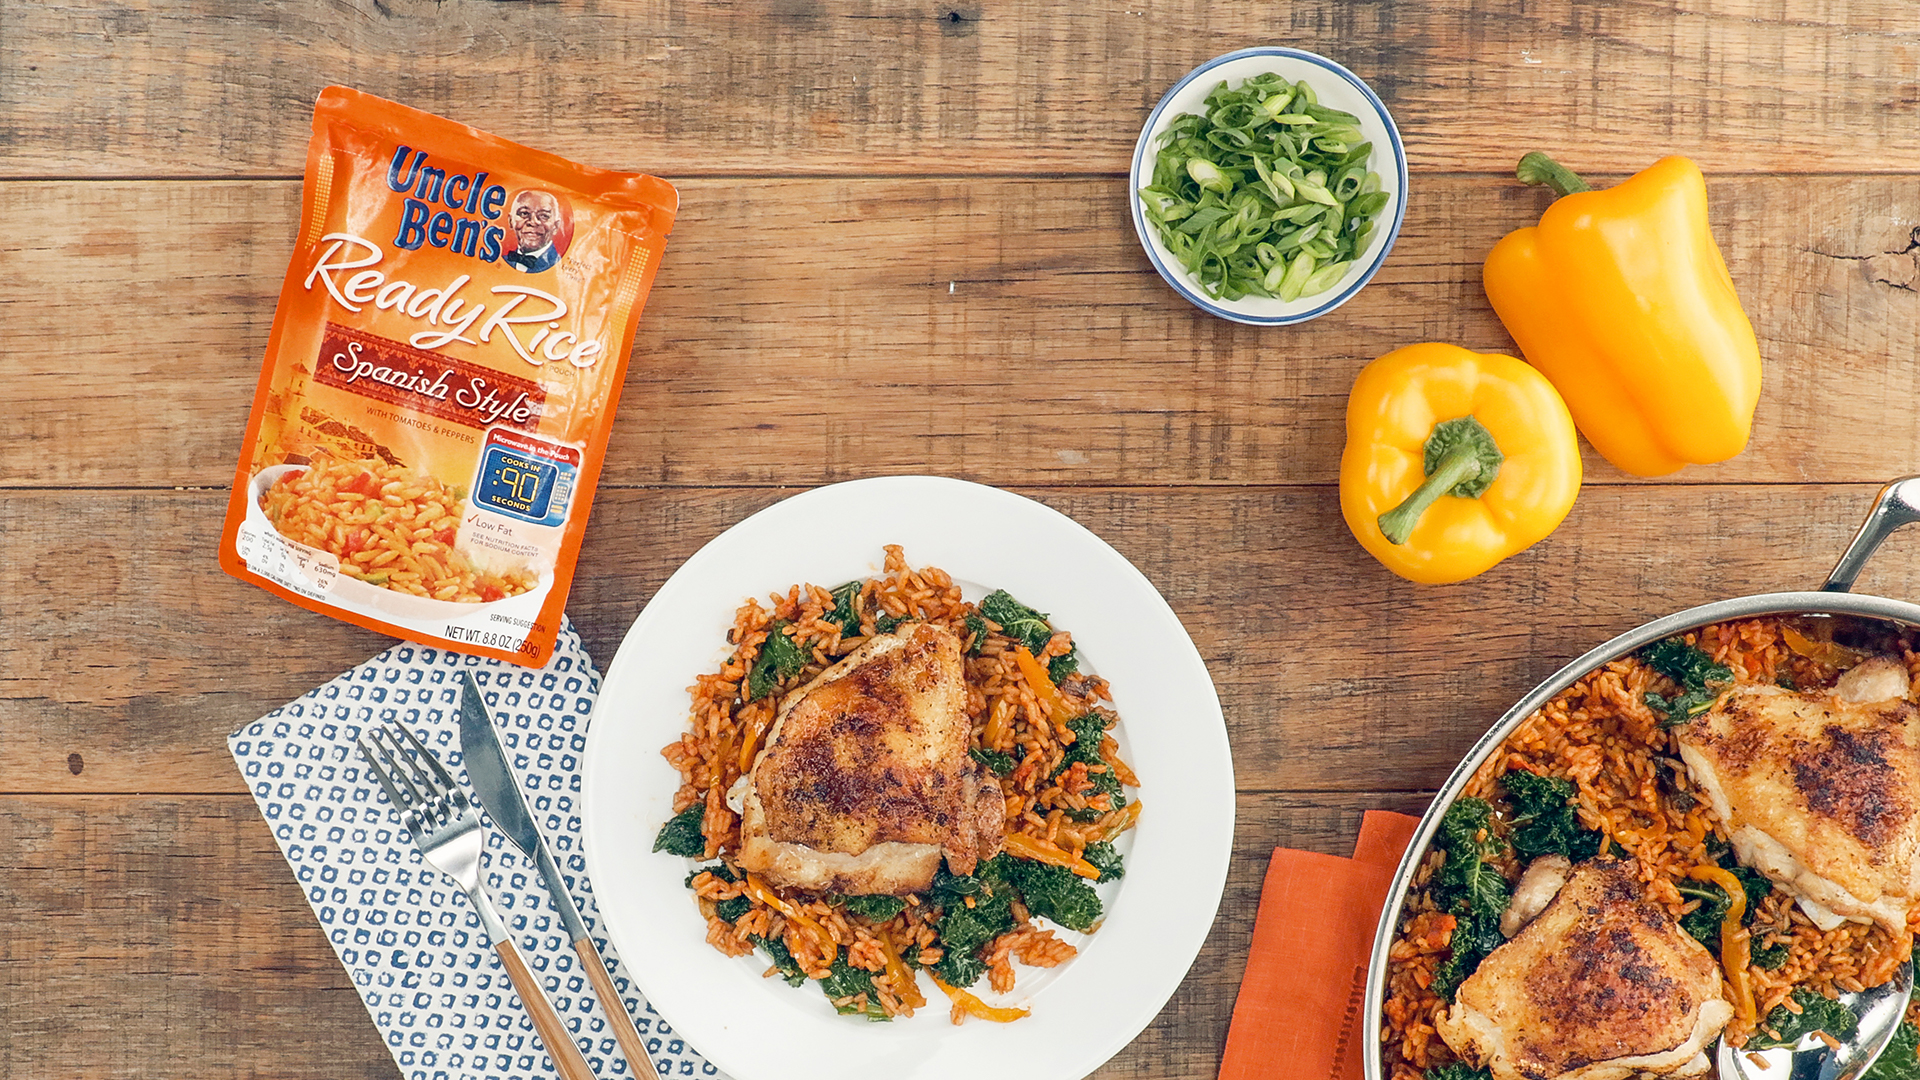 Spanish-Style Chicken and Rice Uncle Ben's